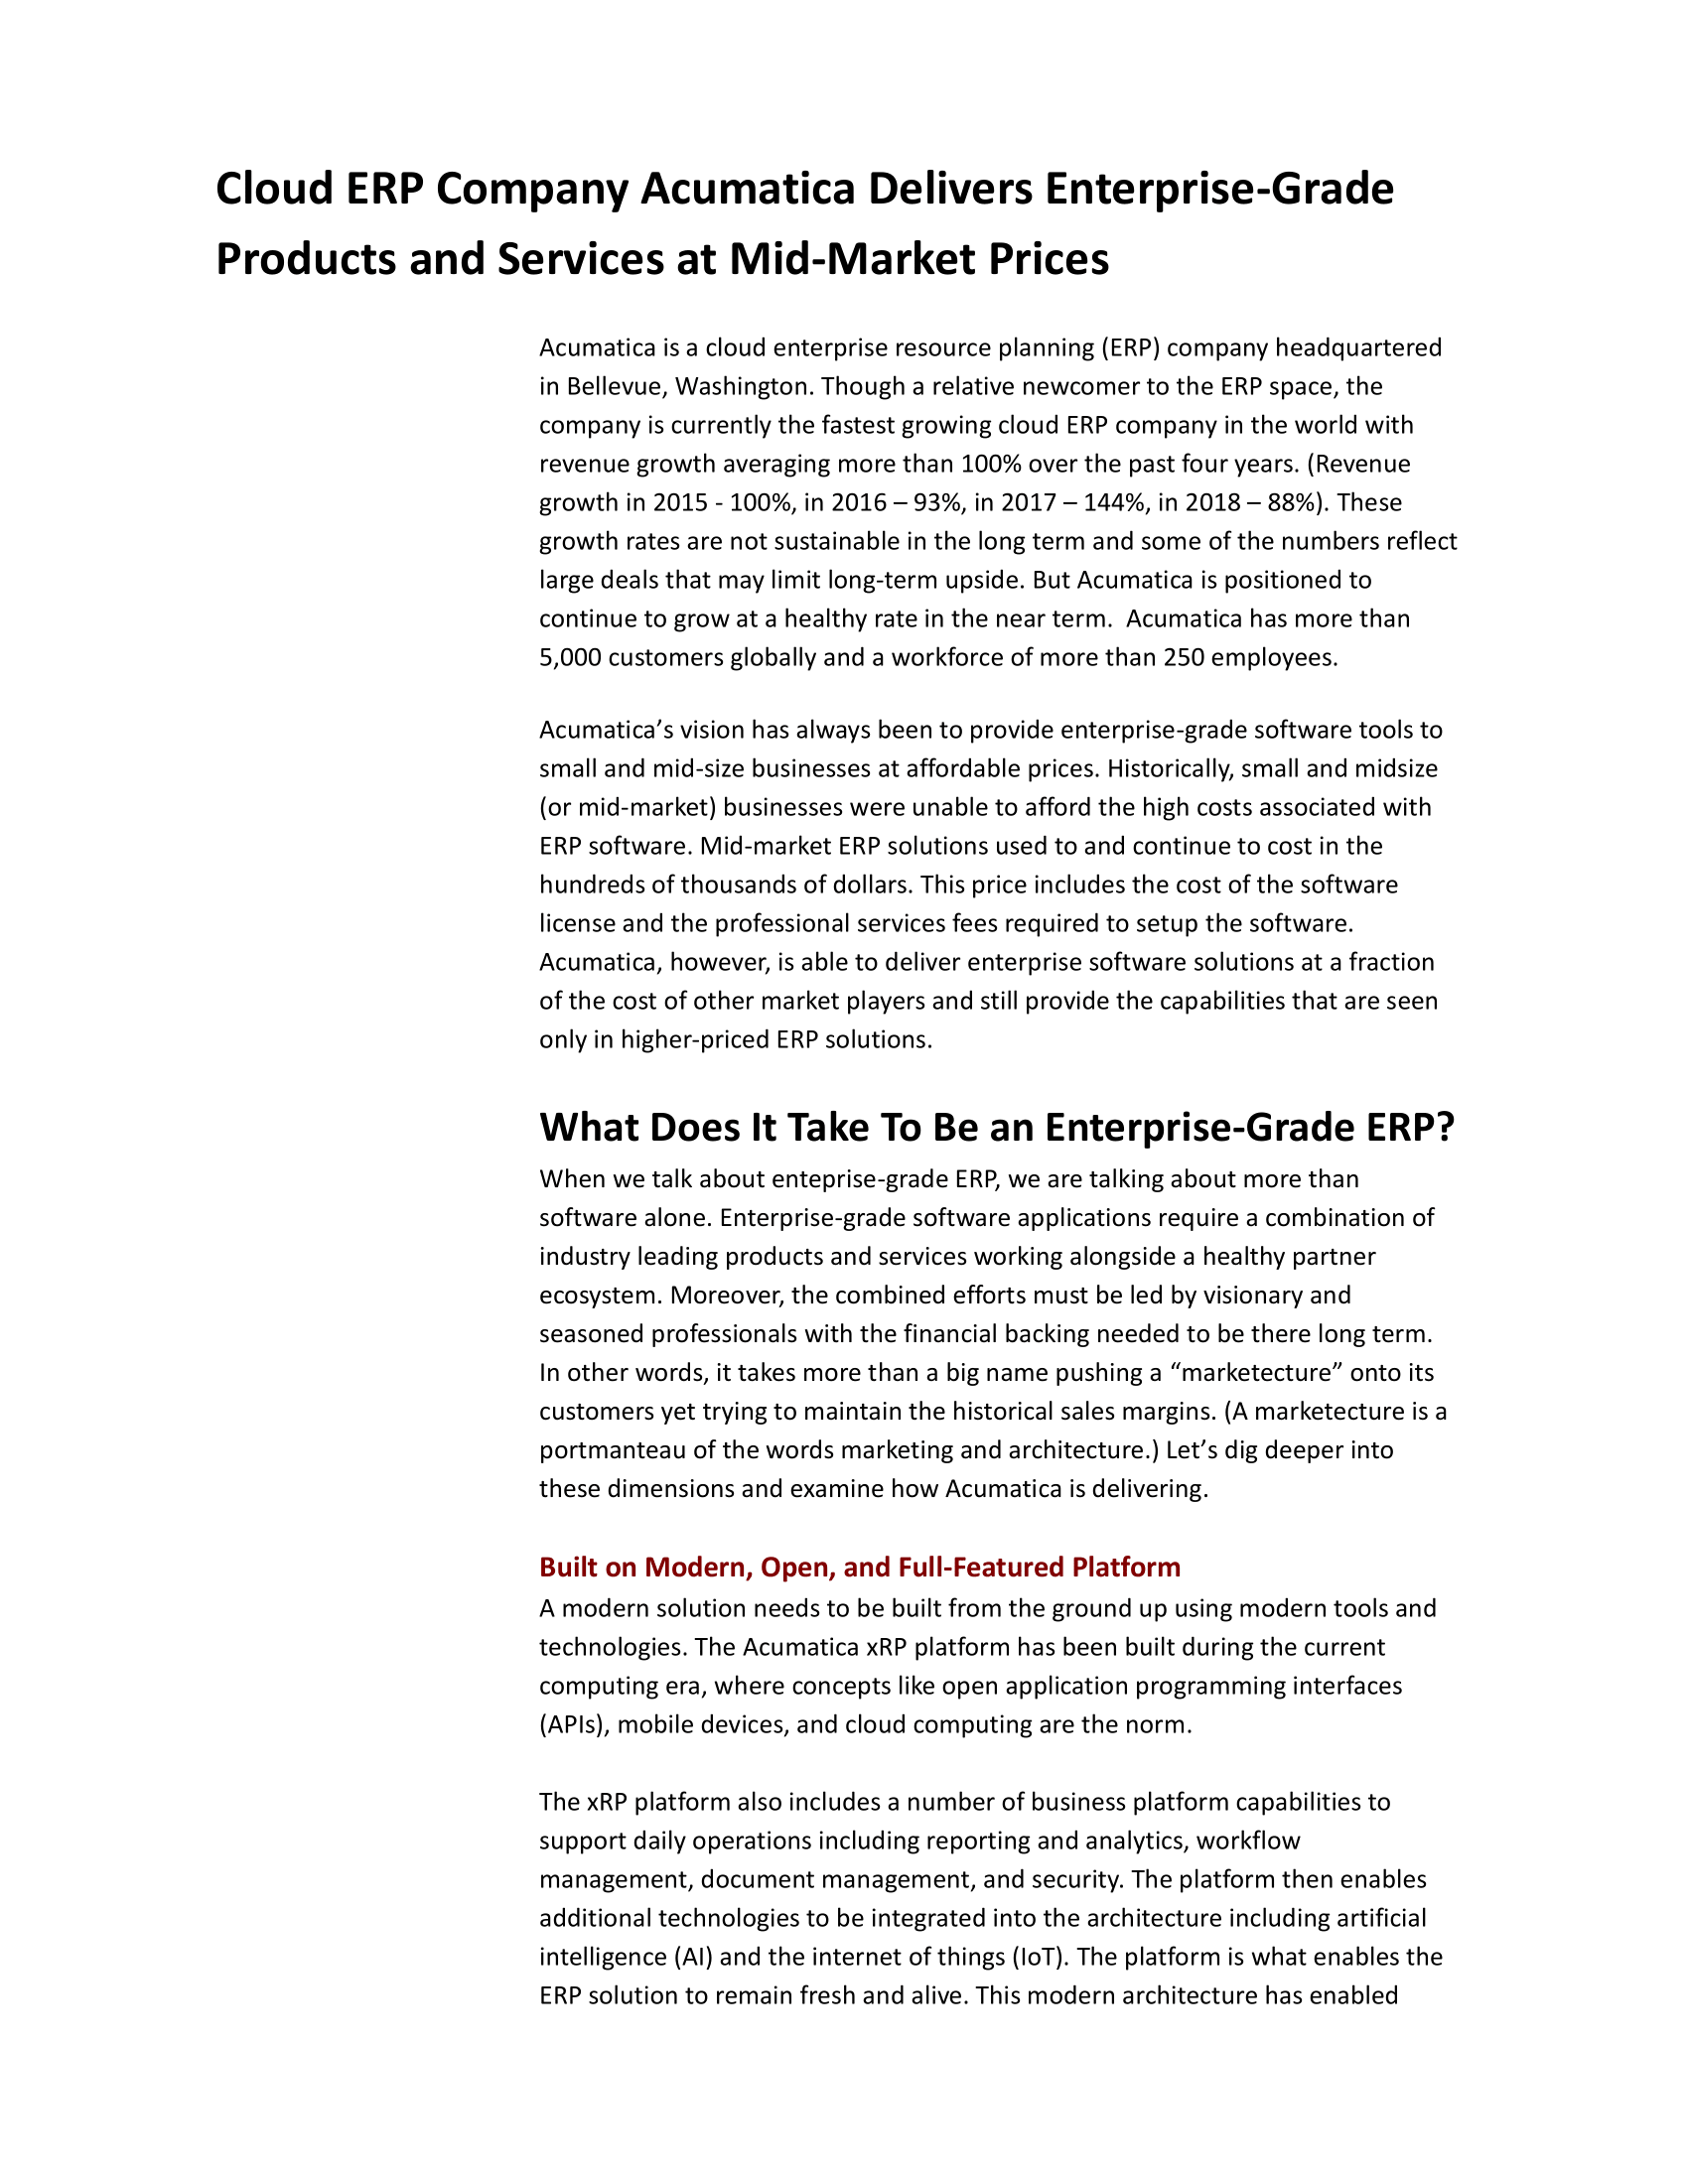 Enterprise Resource Planning Solutions: How to Get Big Functionality at a Reasonable Price, page 1